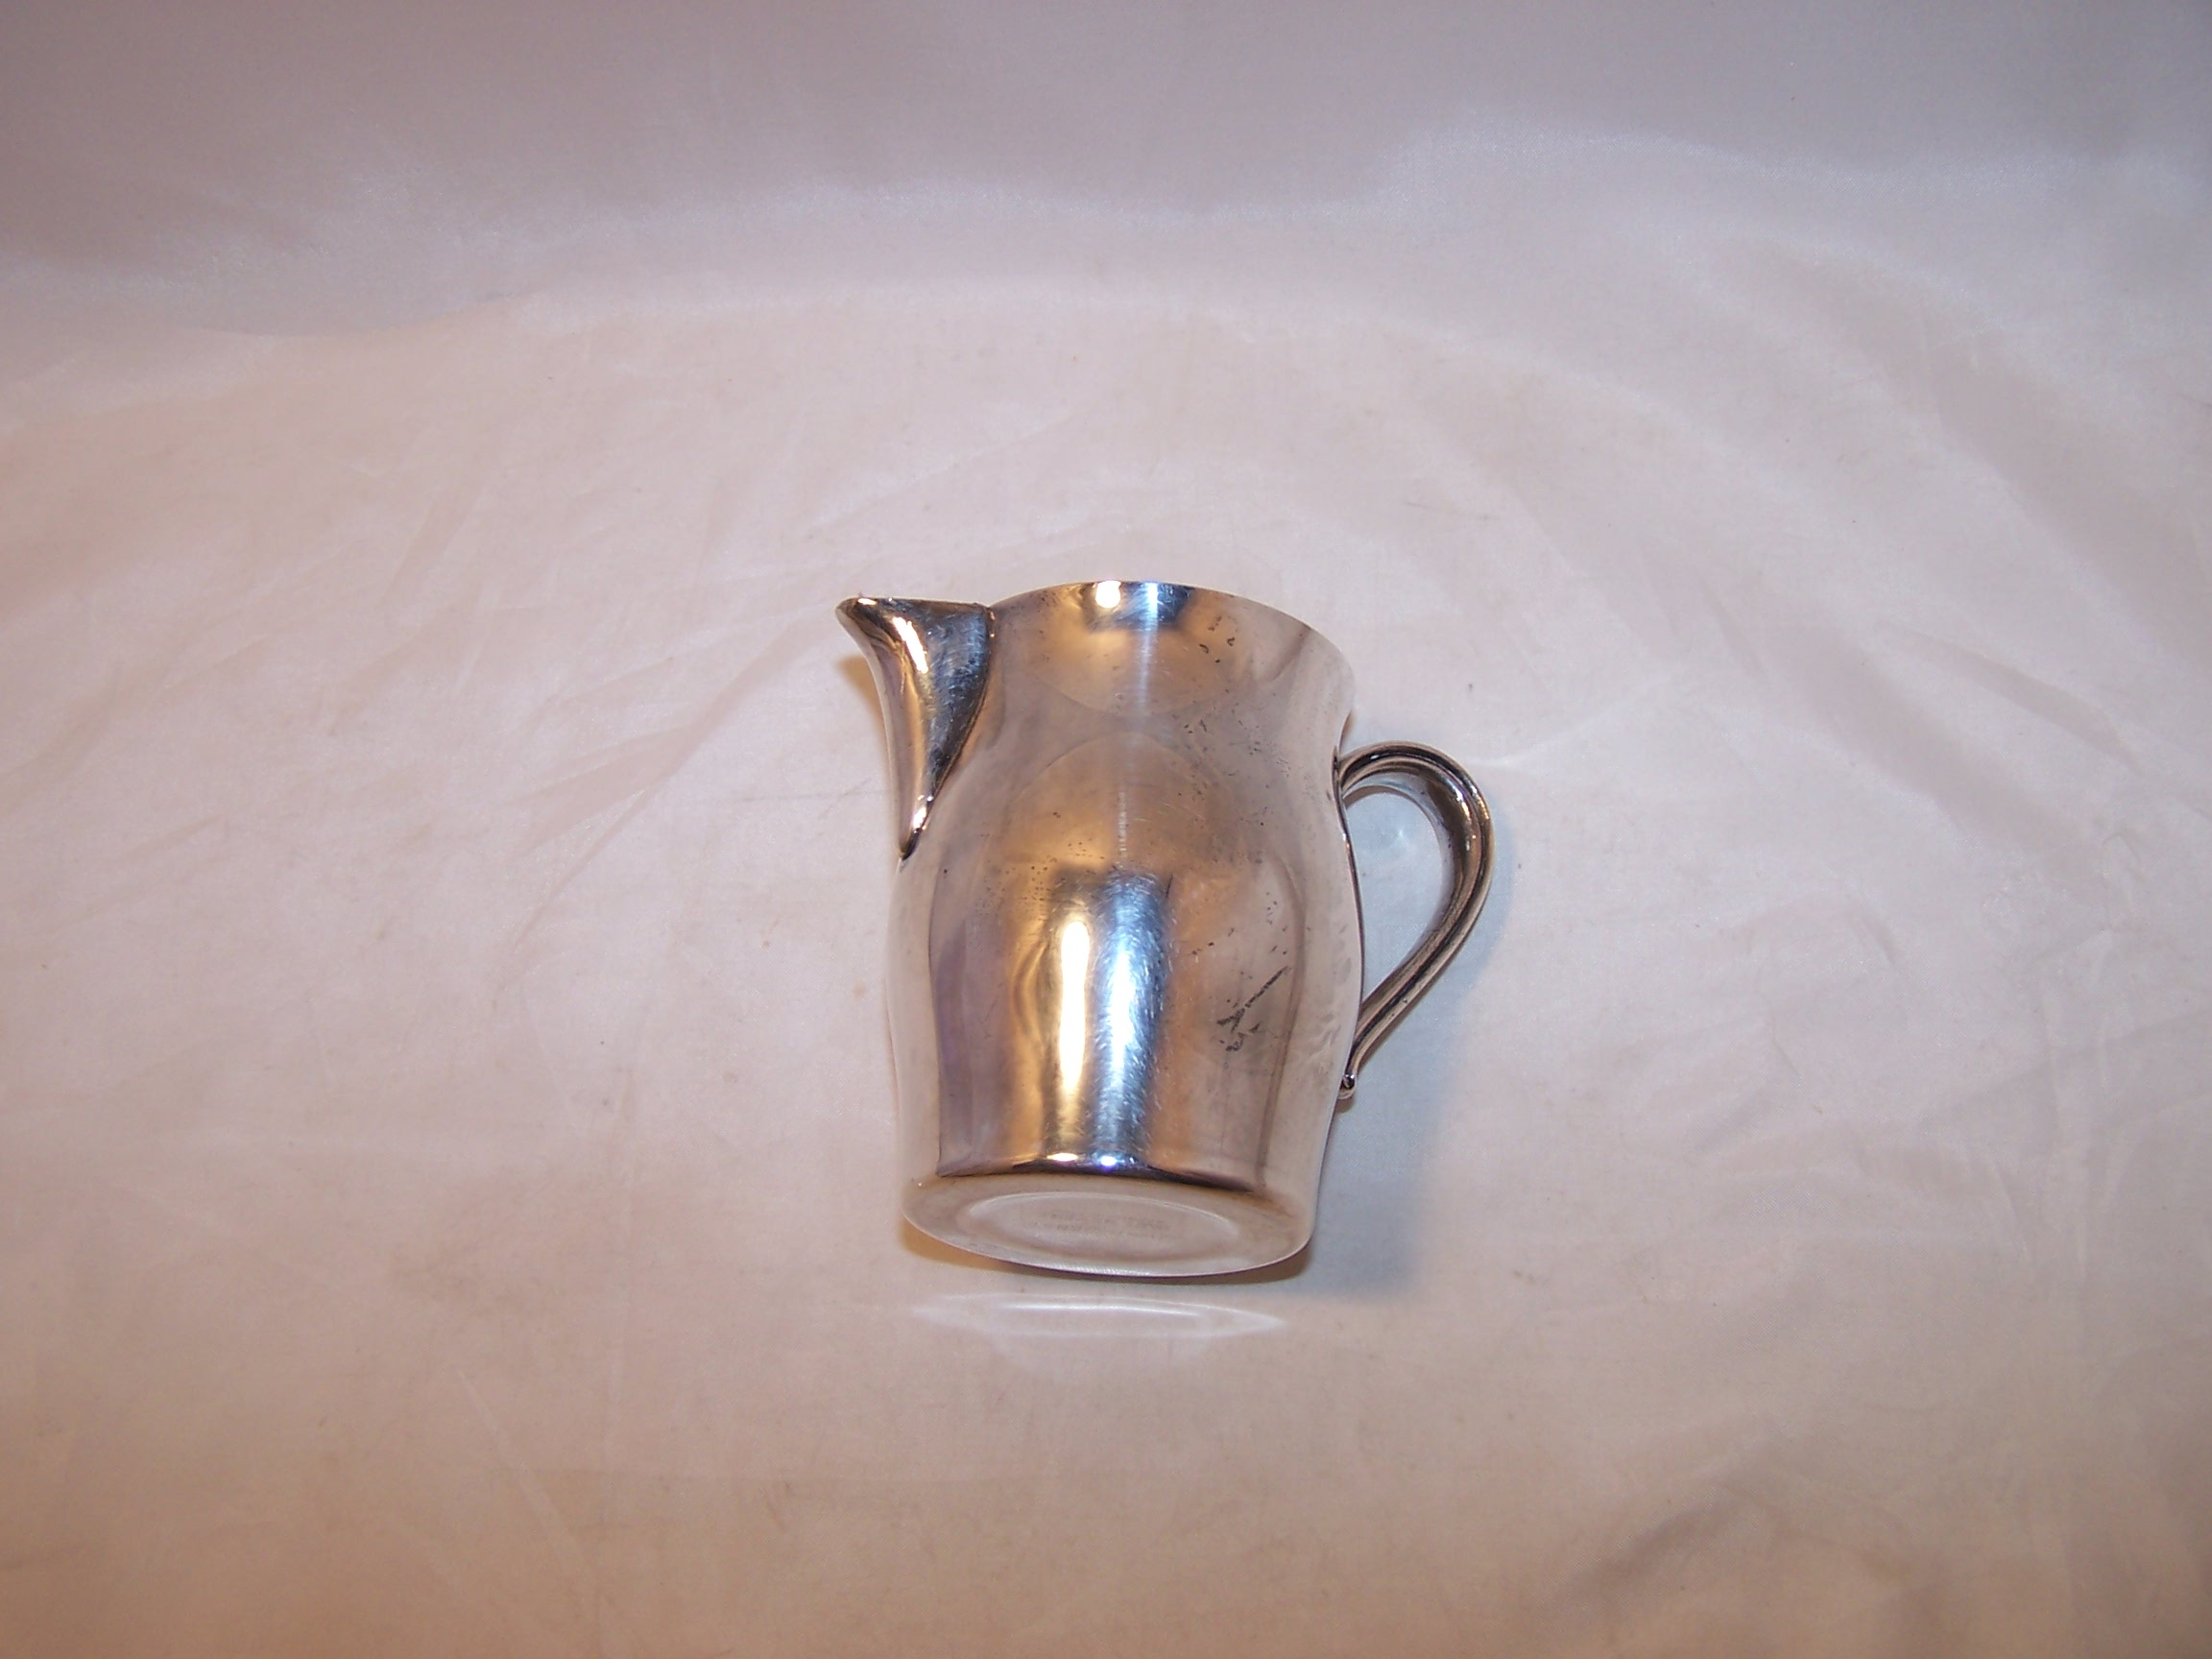 Paul Revere Silverplate Creamer, Reproduction, William Rogers